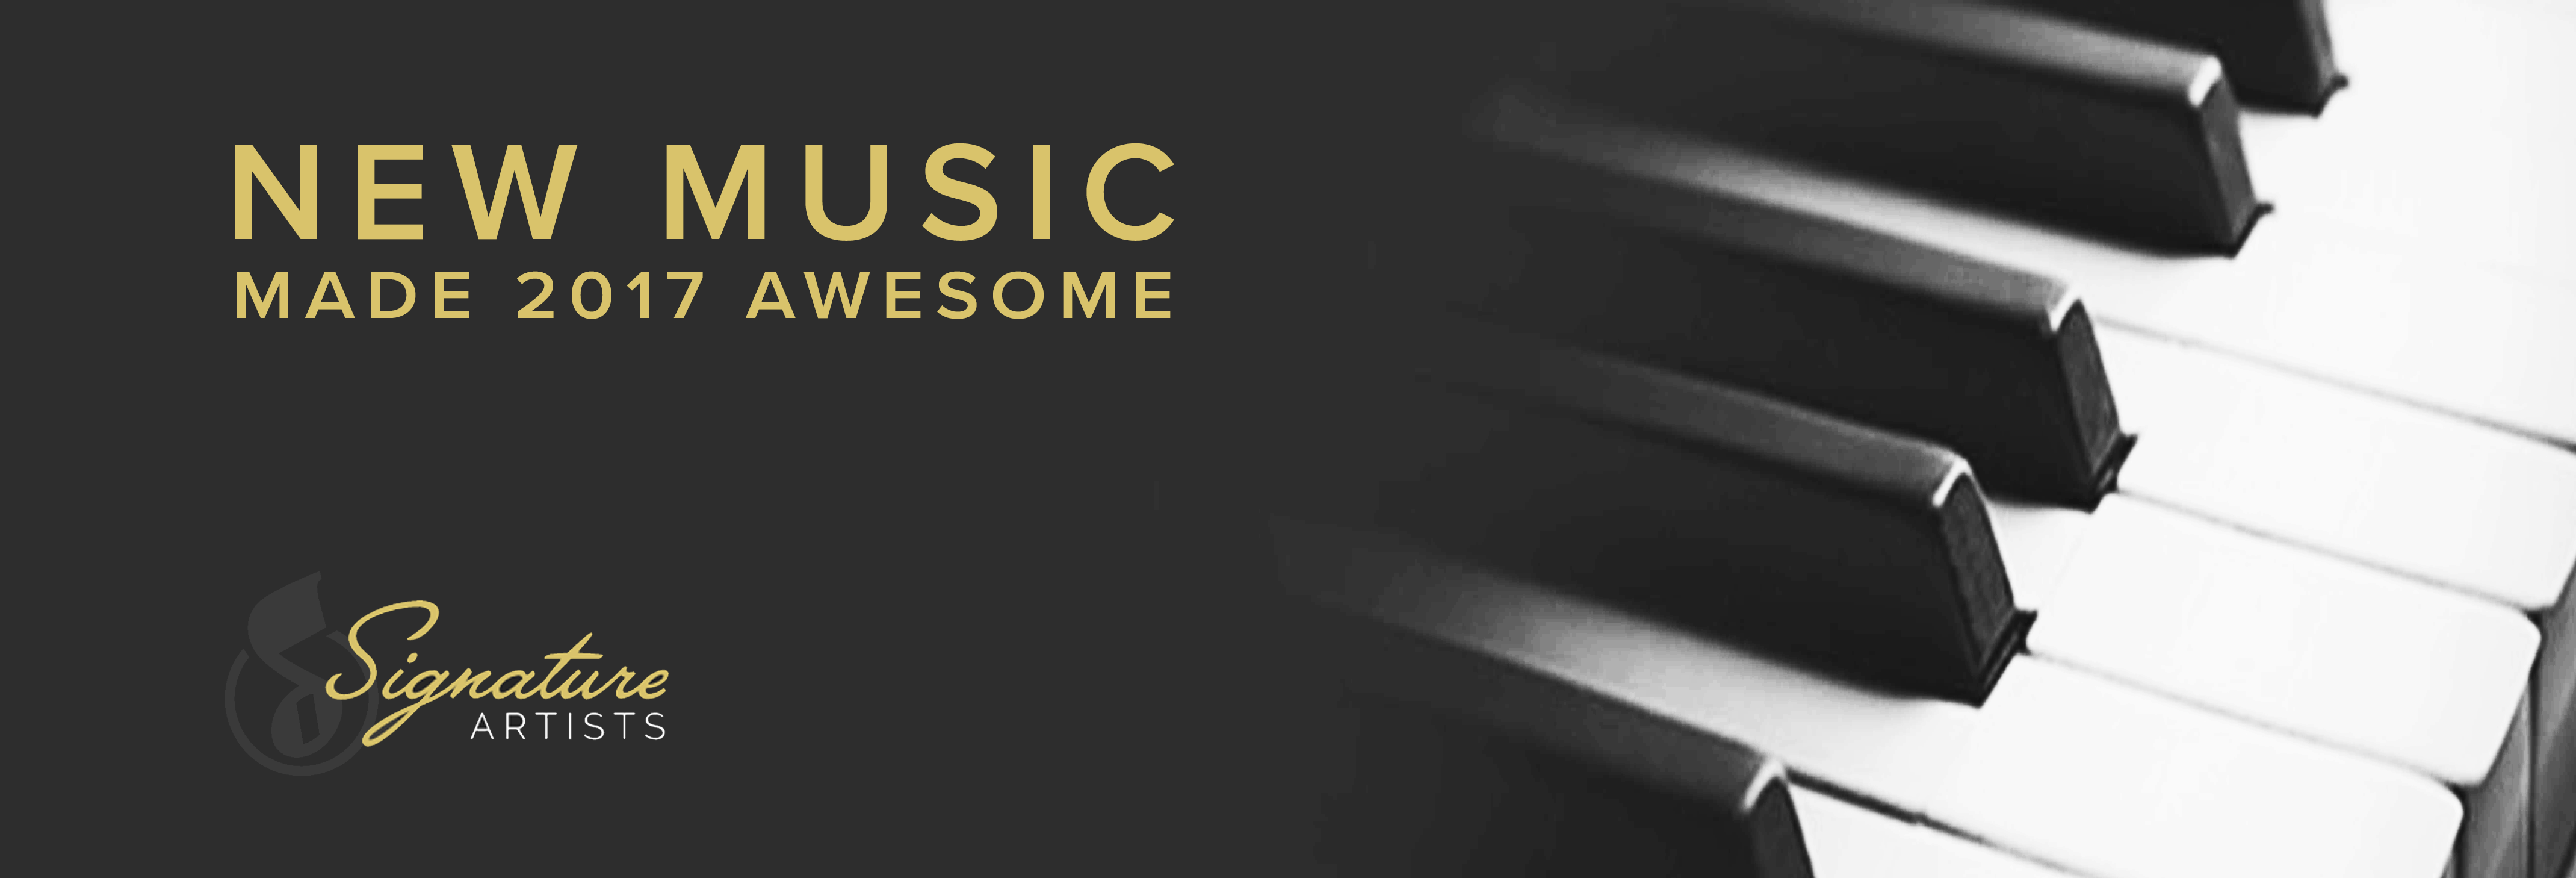 Here's Why New Music Made 2017 Awesome